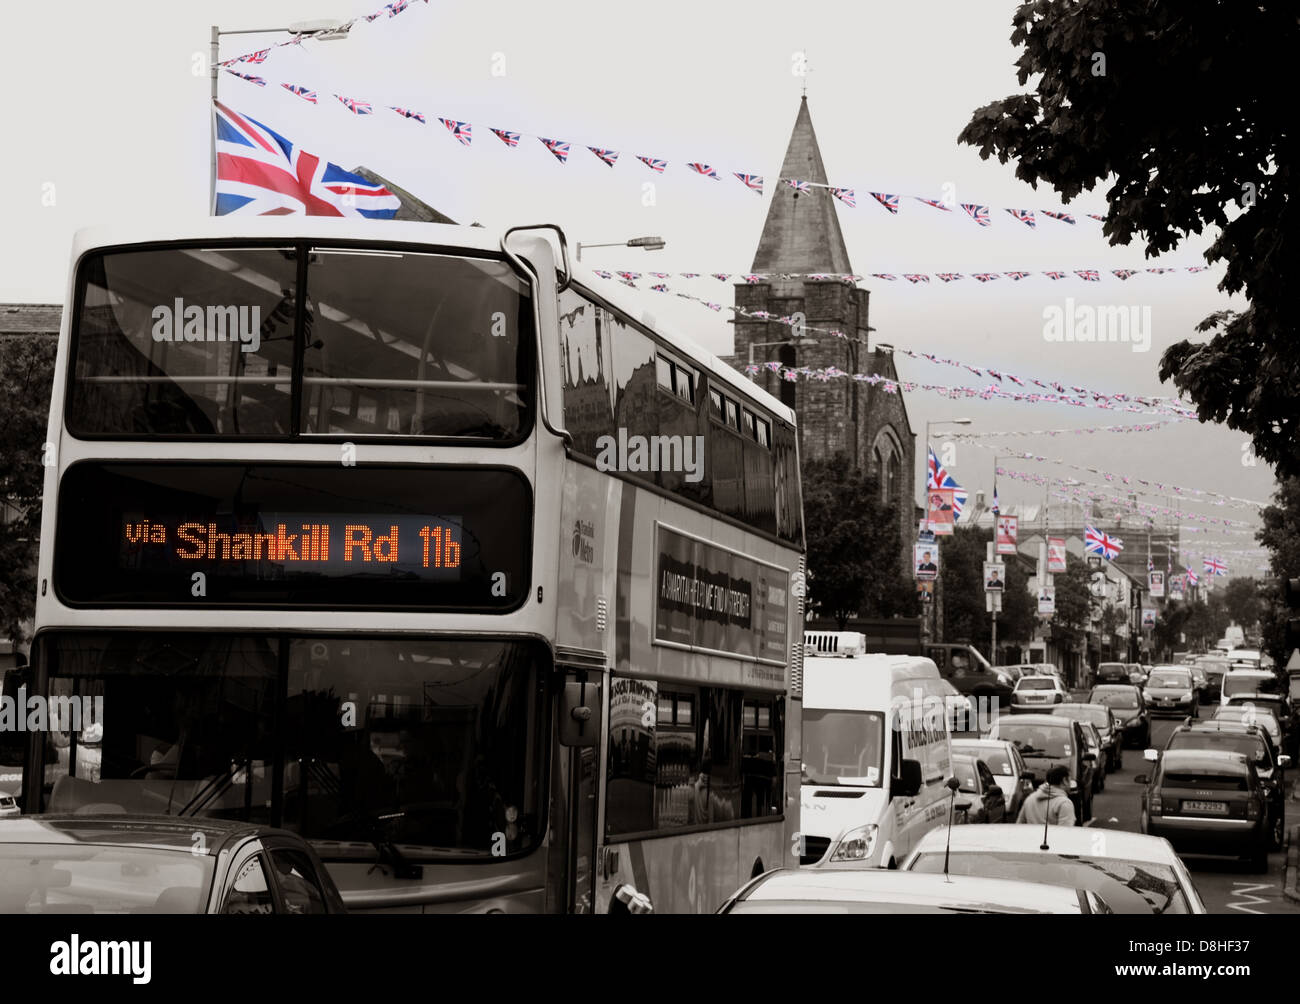 Ulsterbus,city,of,Belfast,sepia,flags,GB,british,union,jack,jacks,unionist,Britain,red,white,blue,DUP,Ulster,unionist,party,orange,man,orangeman,marching,day,July,orangemen,lodge,tradition,traditionalists,service,tour,road,traffic,congestion,cars,automobiles,automobile,history,historic,Ireland,rd,gotonysmith fear home rule homerule nationalist real the 11b via,gotonysmith,Buy Pictures of,Buy Images Of